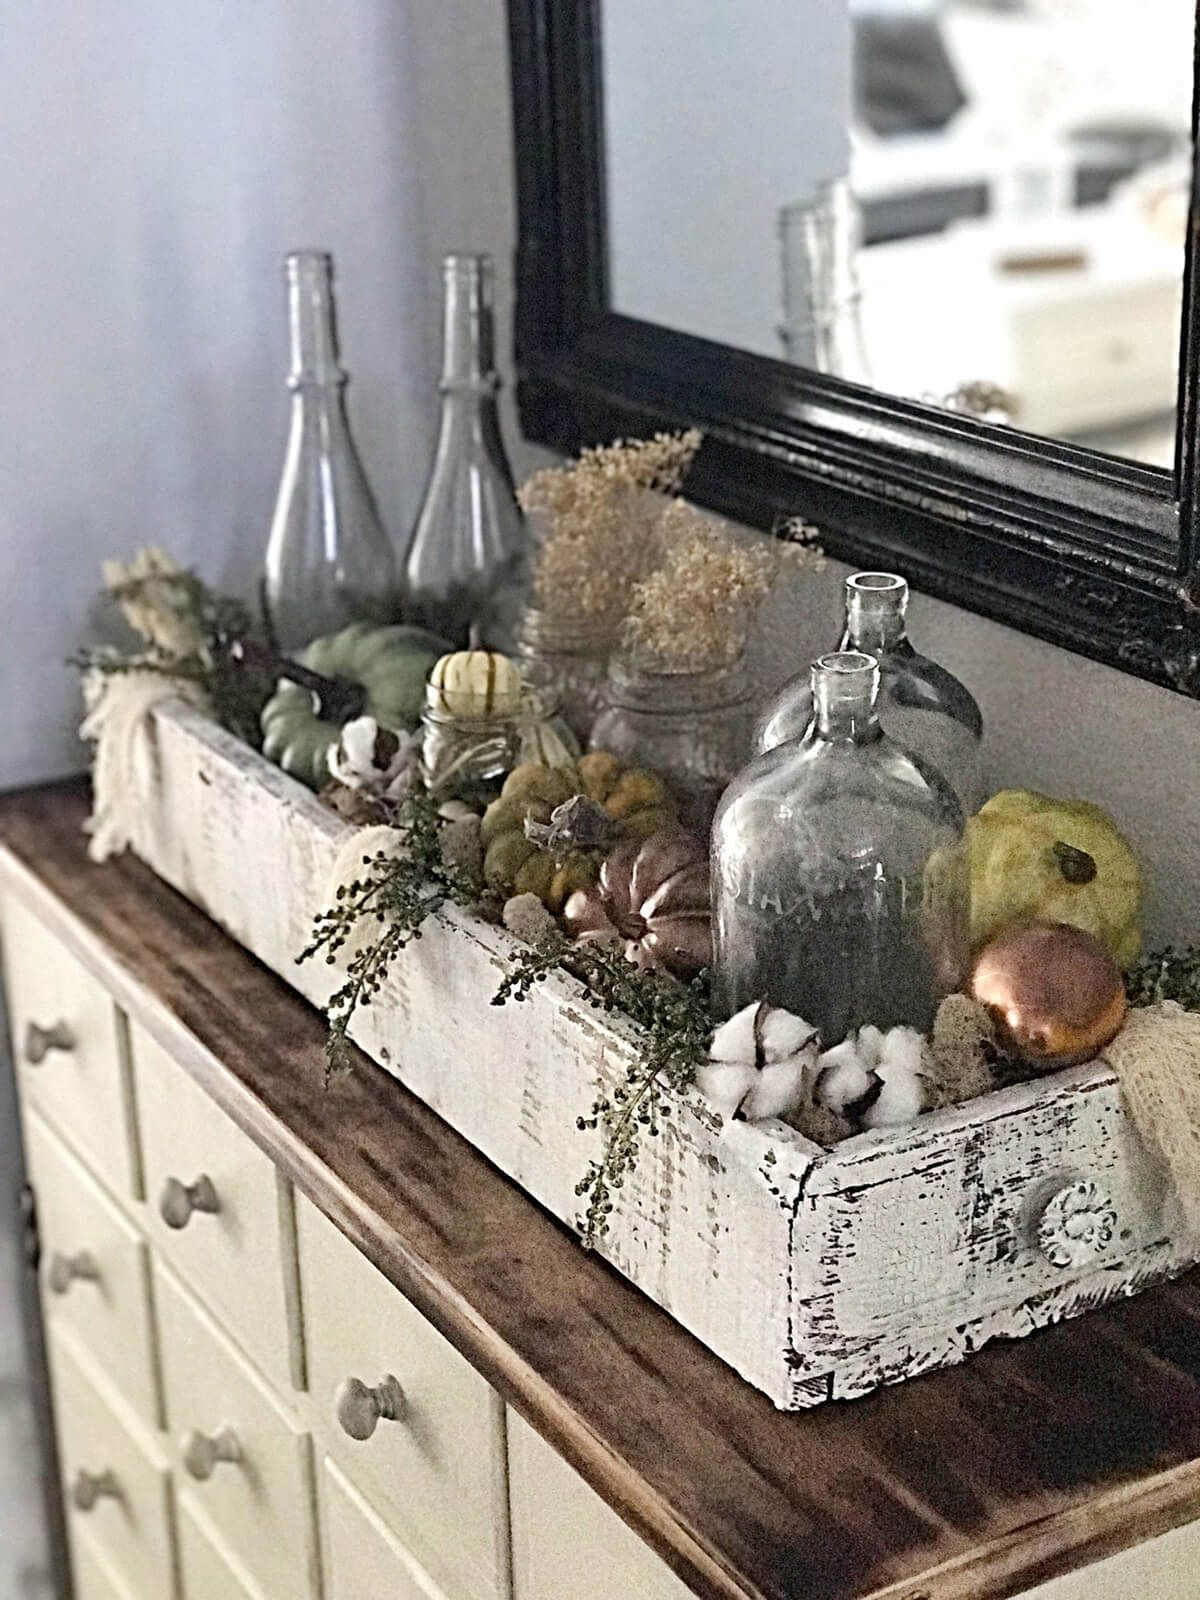 14 cozy rustic autumn decor ideas to welcome the new season - furnishing ideas